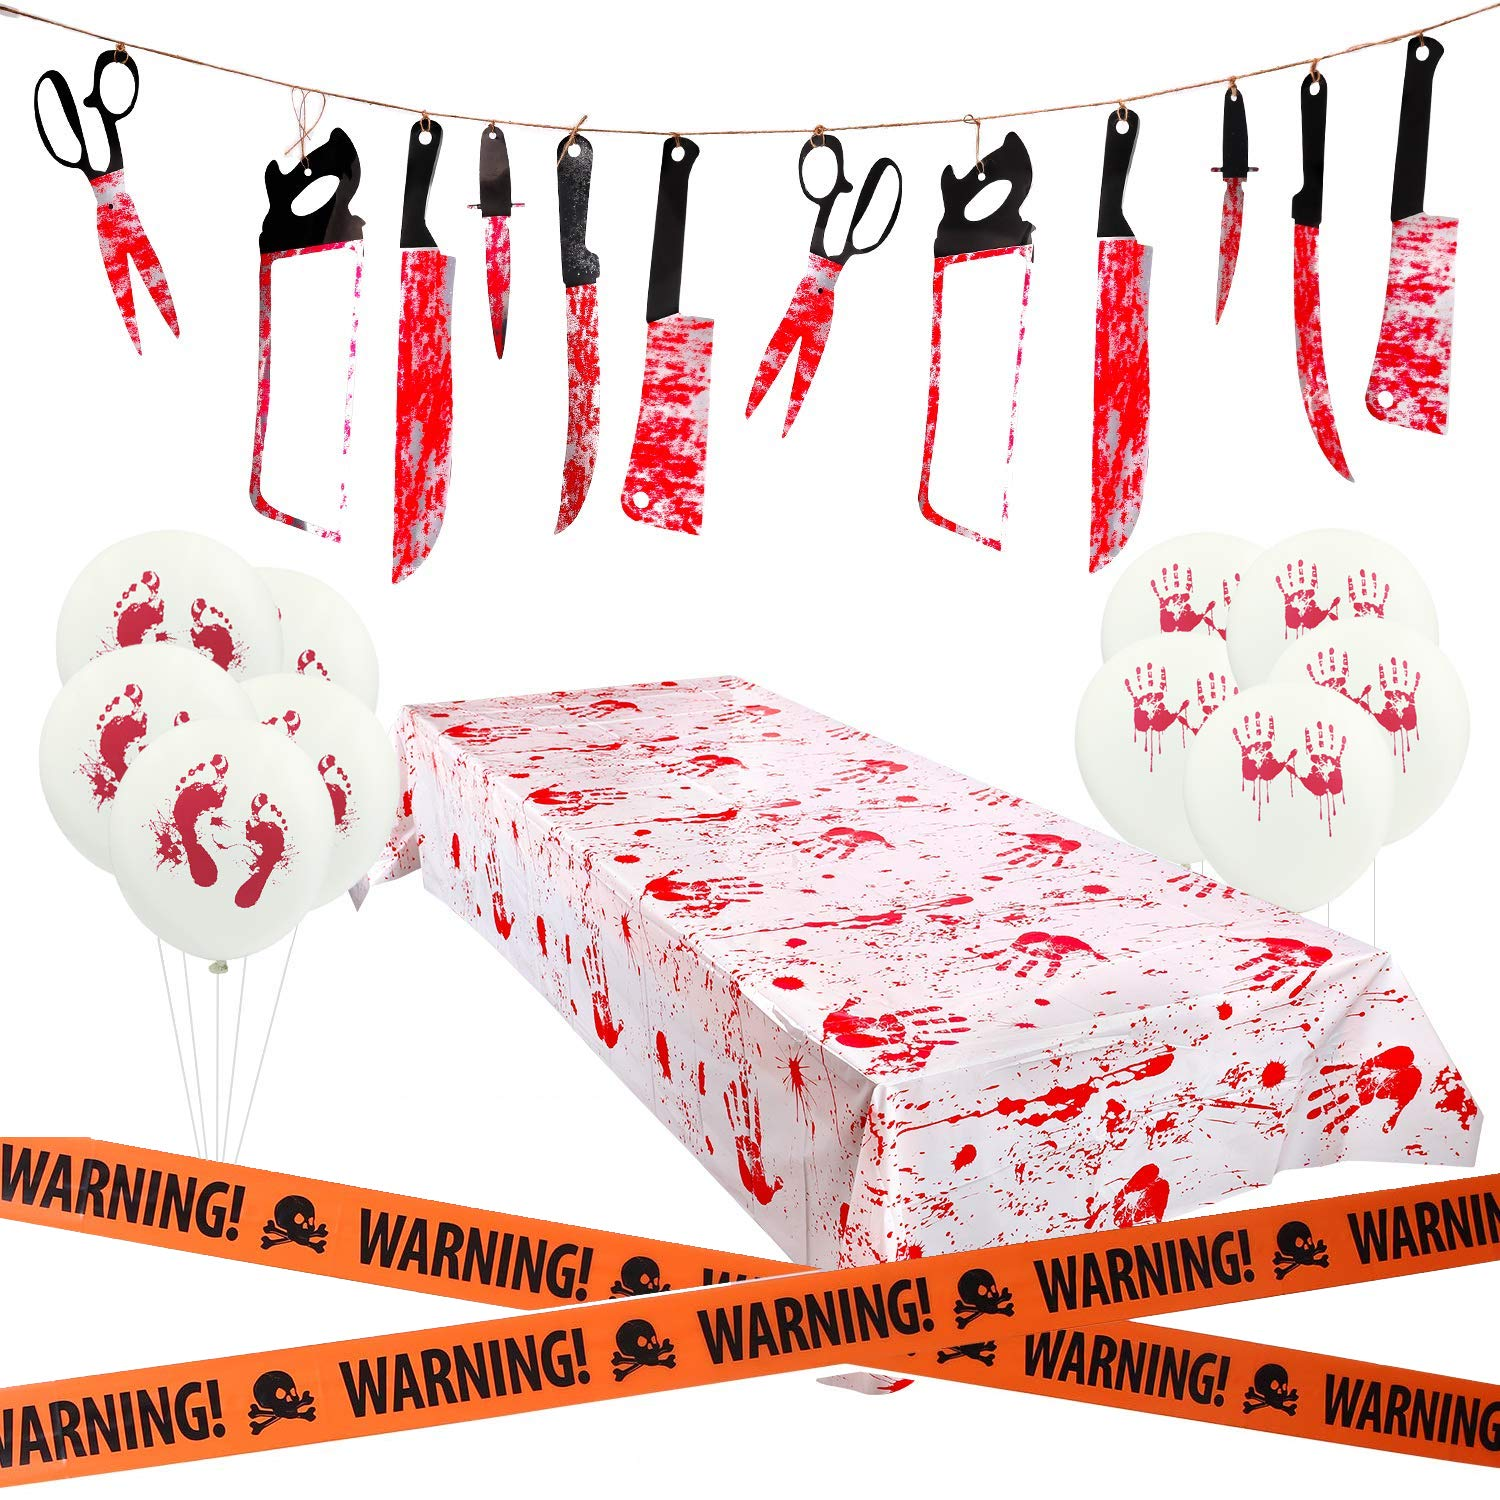 HusDow Halloween Scary Decorations, 1pcs Bloody Garland Tortune Weapons Banner,1pcs Bloody Print Halloween Tablecloth,and 10pcs Bloody Balloons 1pcs Waring Tape for Halloween Haunted House Decor